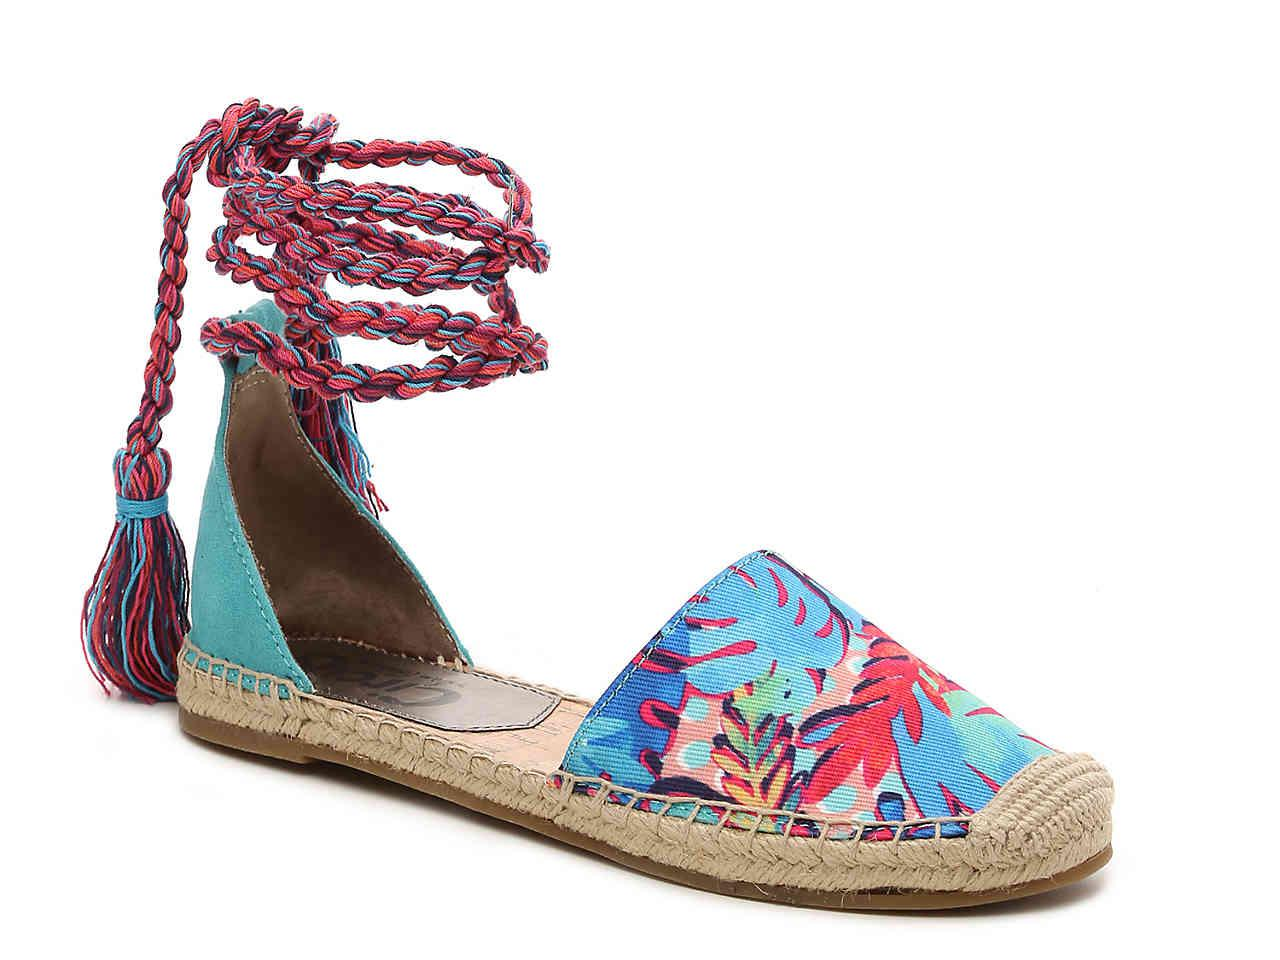 7d0766c6571a0 Lyst - Circus by Sam Edelman Lenora Flat in Blue